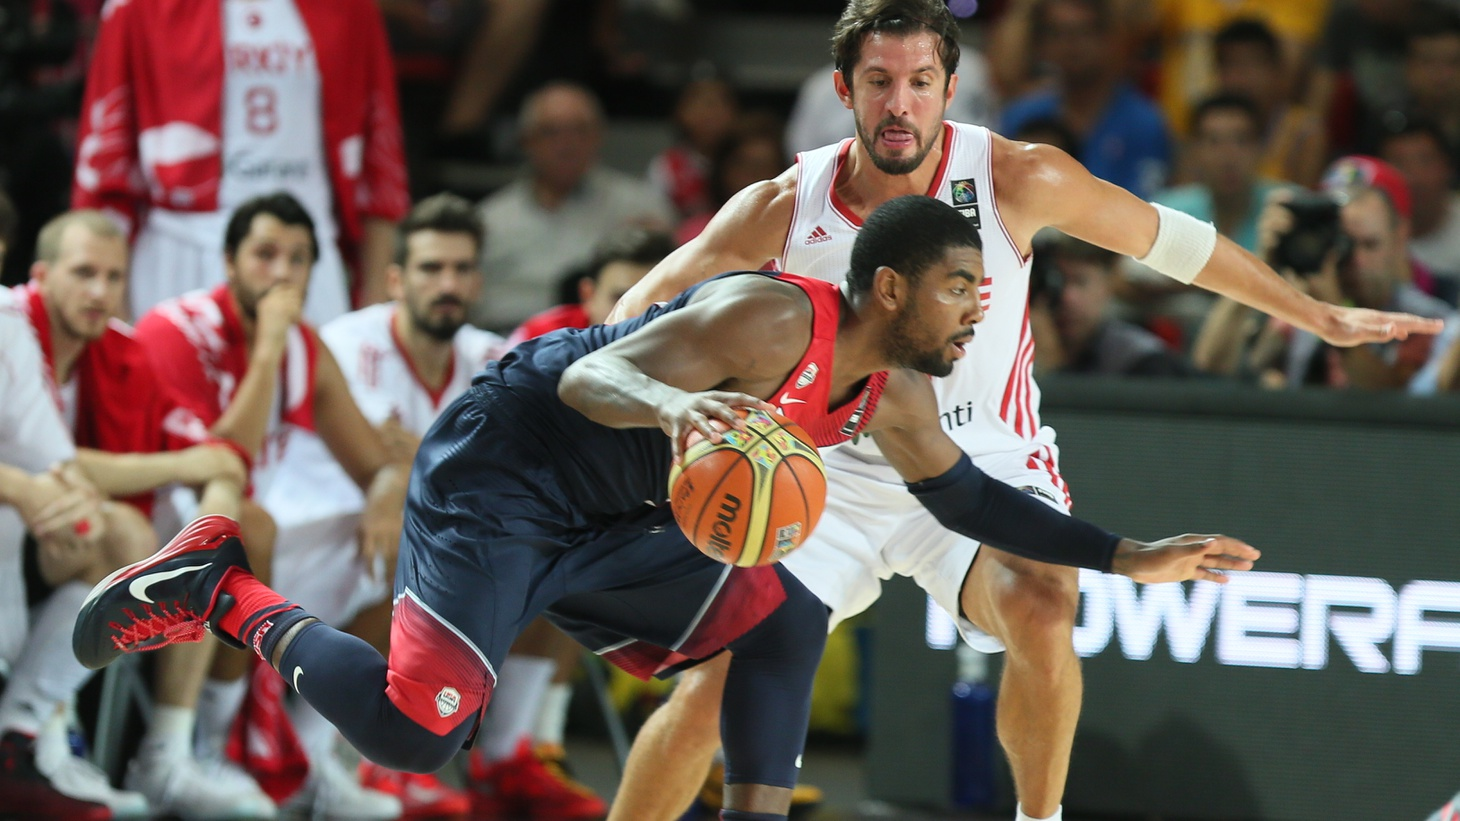 Brooklyn Nets player Kyrie Irving plays in the FIBA World Basketball Championship in Turkey, 2014.